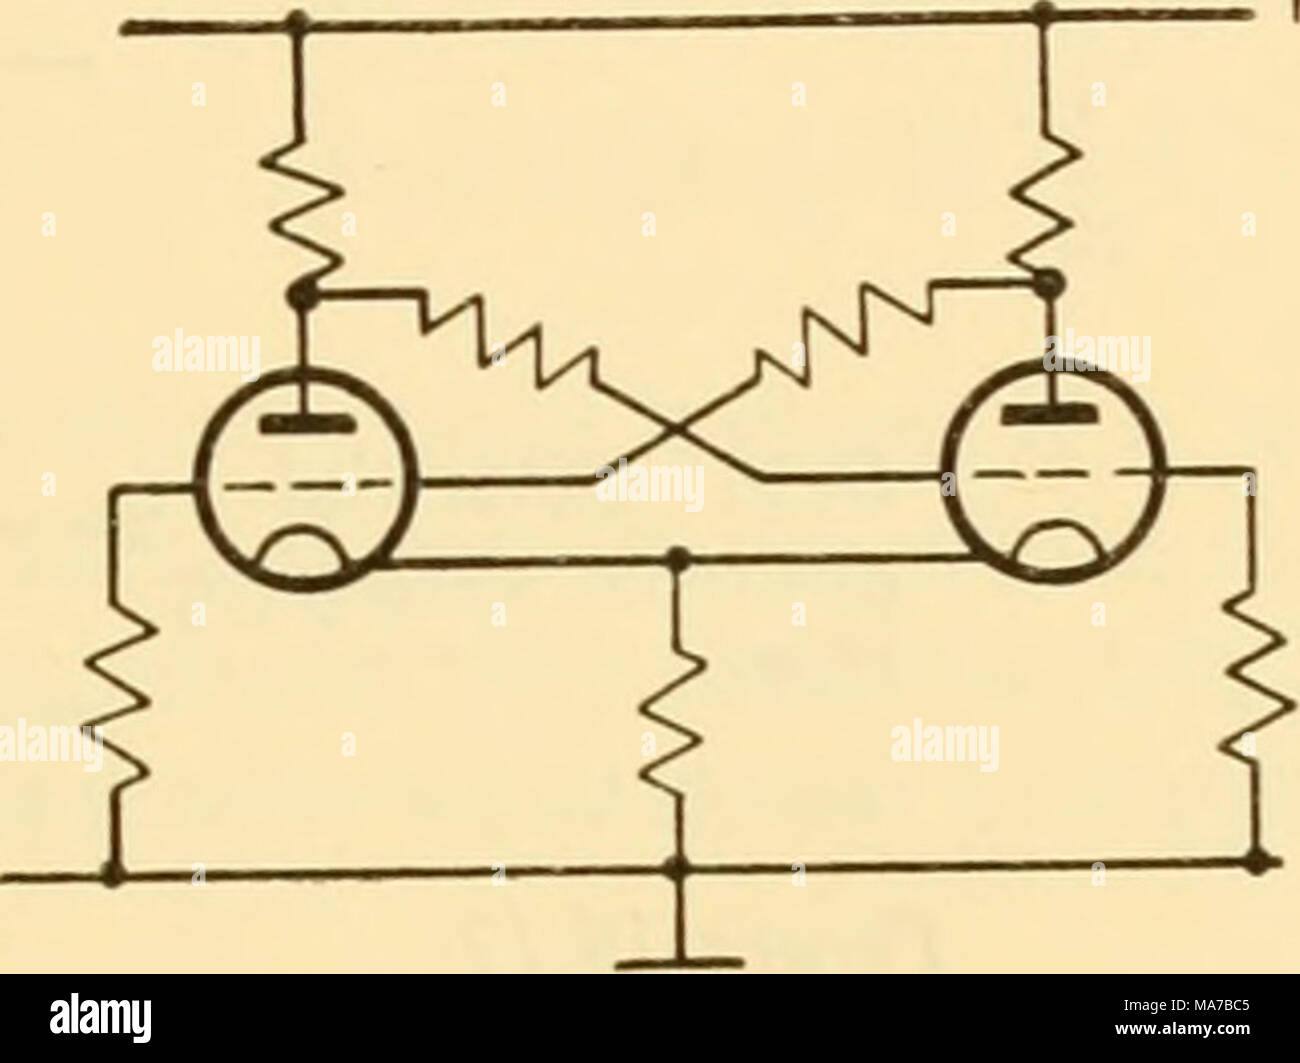 Tube Voltage Stock Photos Images Alamy Triangular Wave Generator Circuit Electronic Apparatus For Biological Research Ht Figure 1610 Generators The Most Important